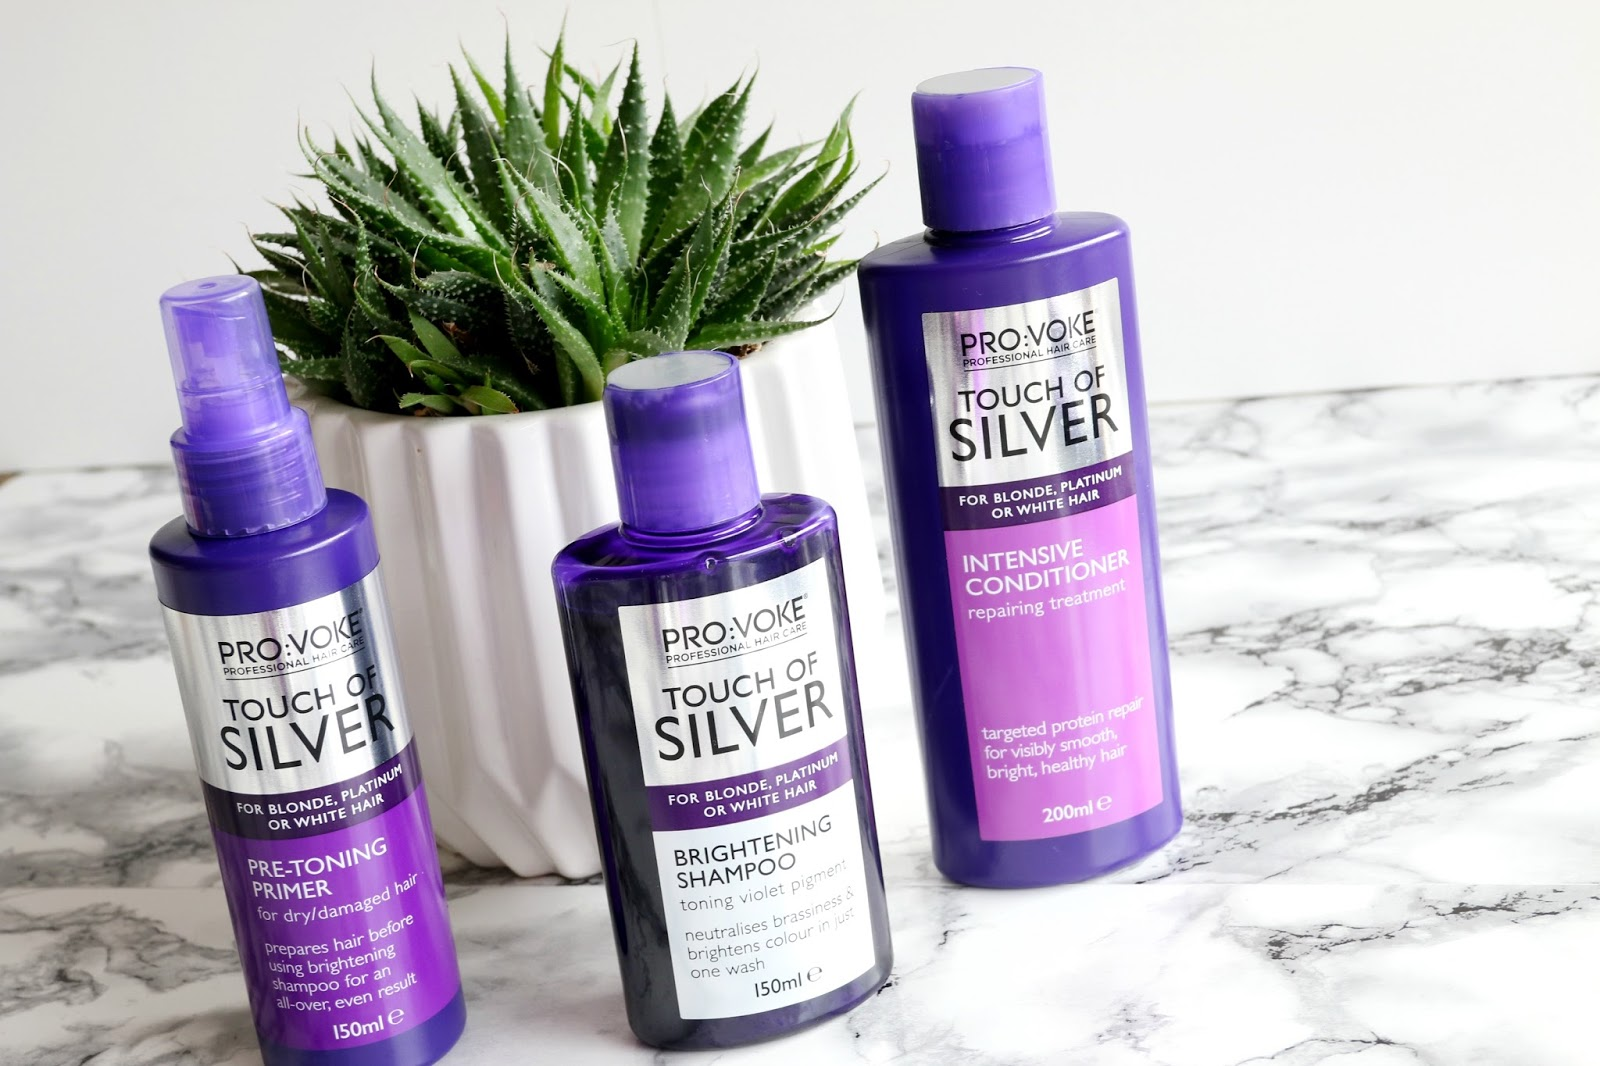 PRO:VOKE Touch Of Silver Shampoo and Conditioner Review